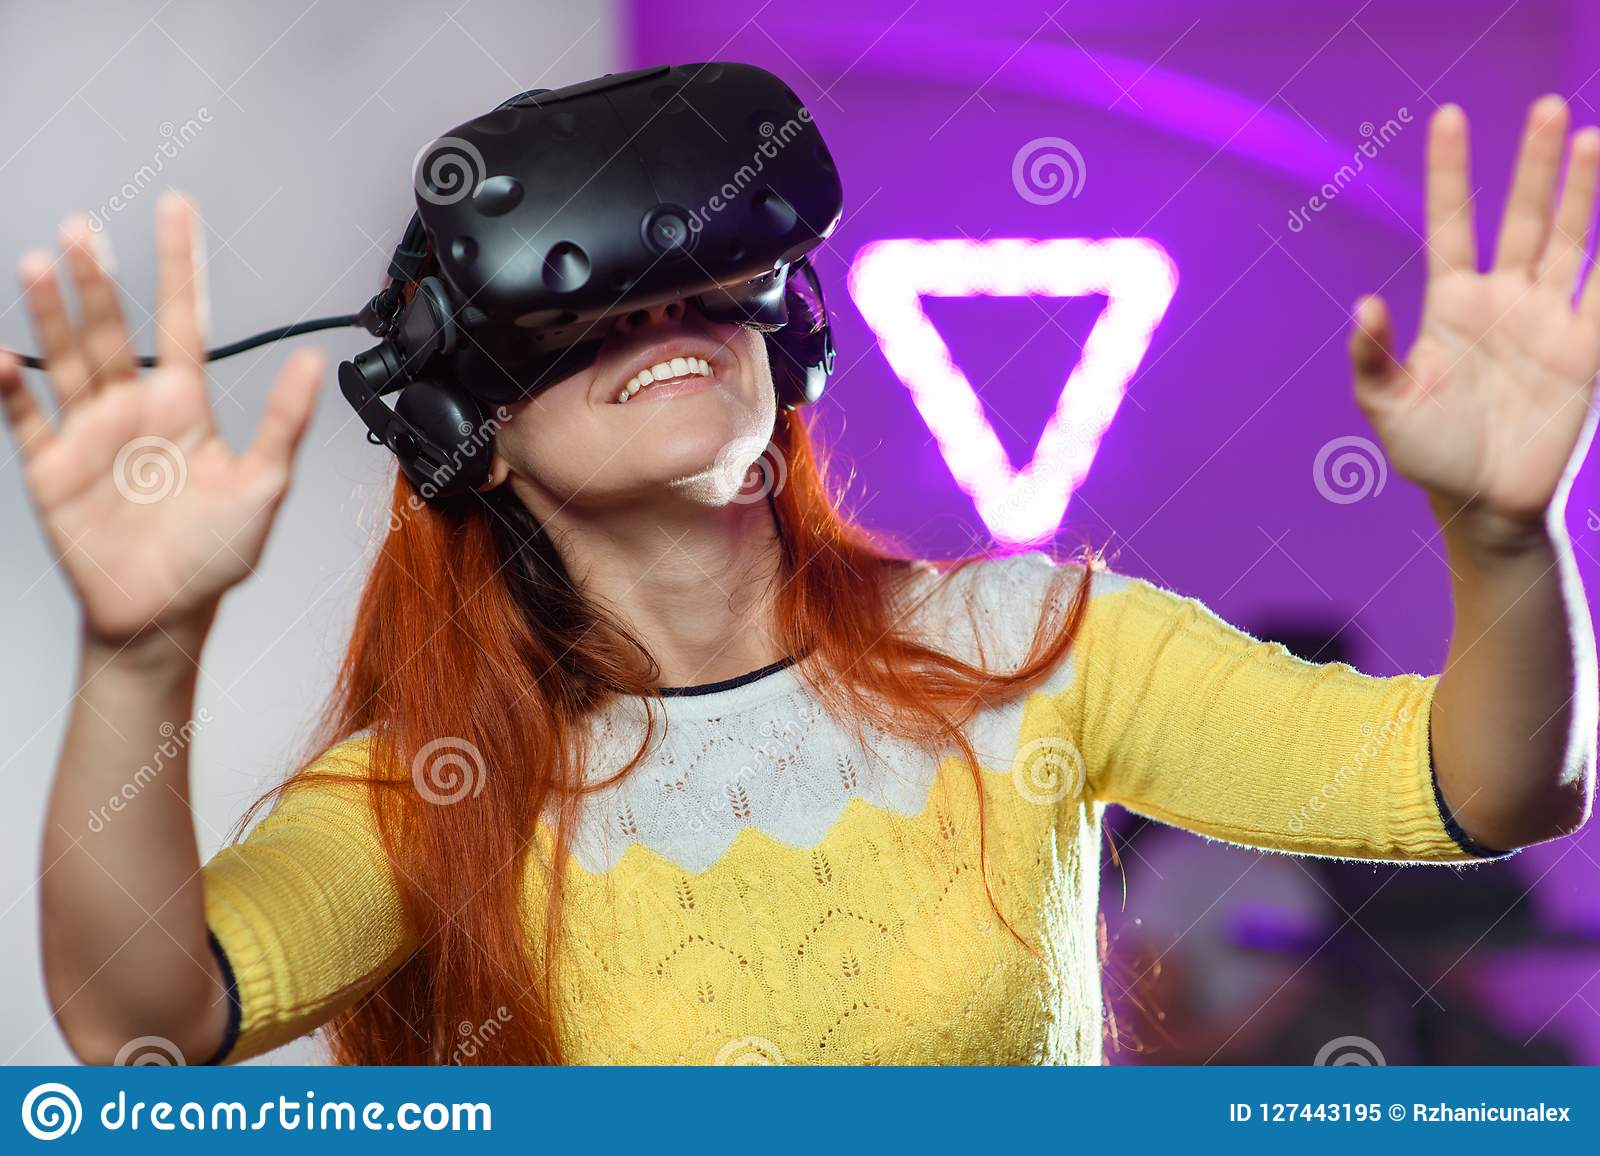 The Young Little Girl With Vr Virtual Reality Glasses